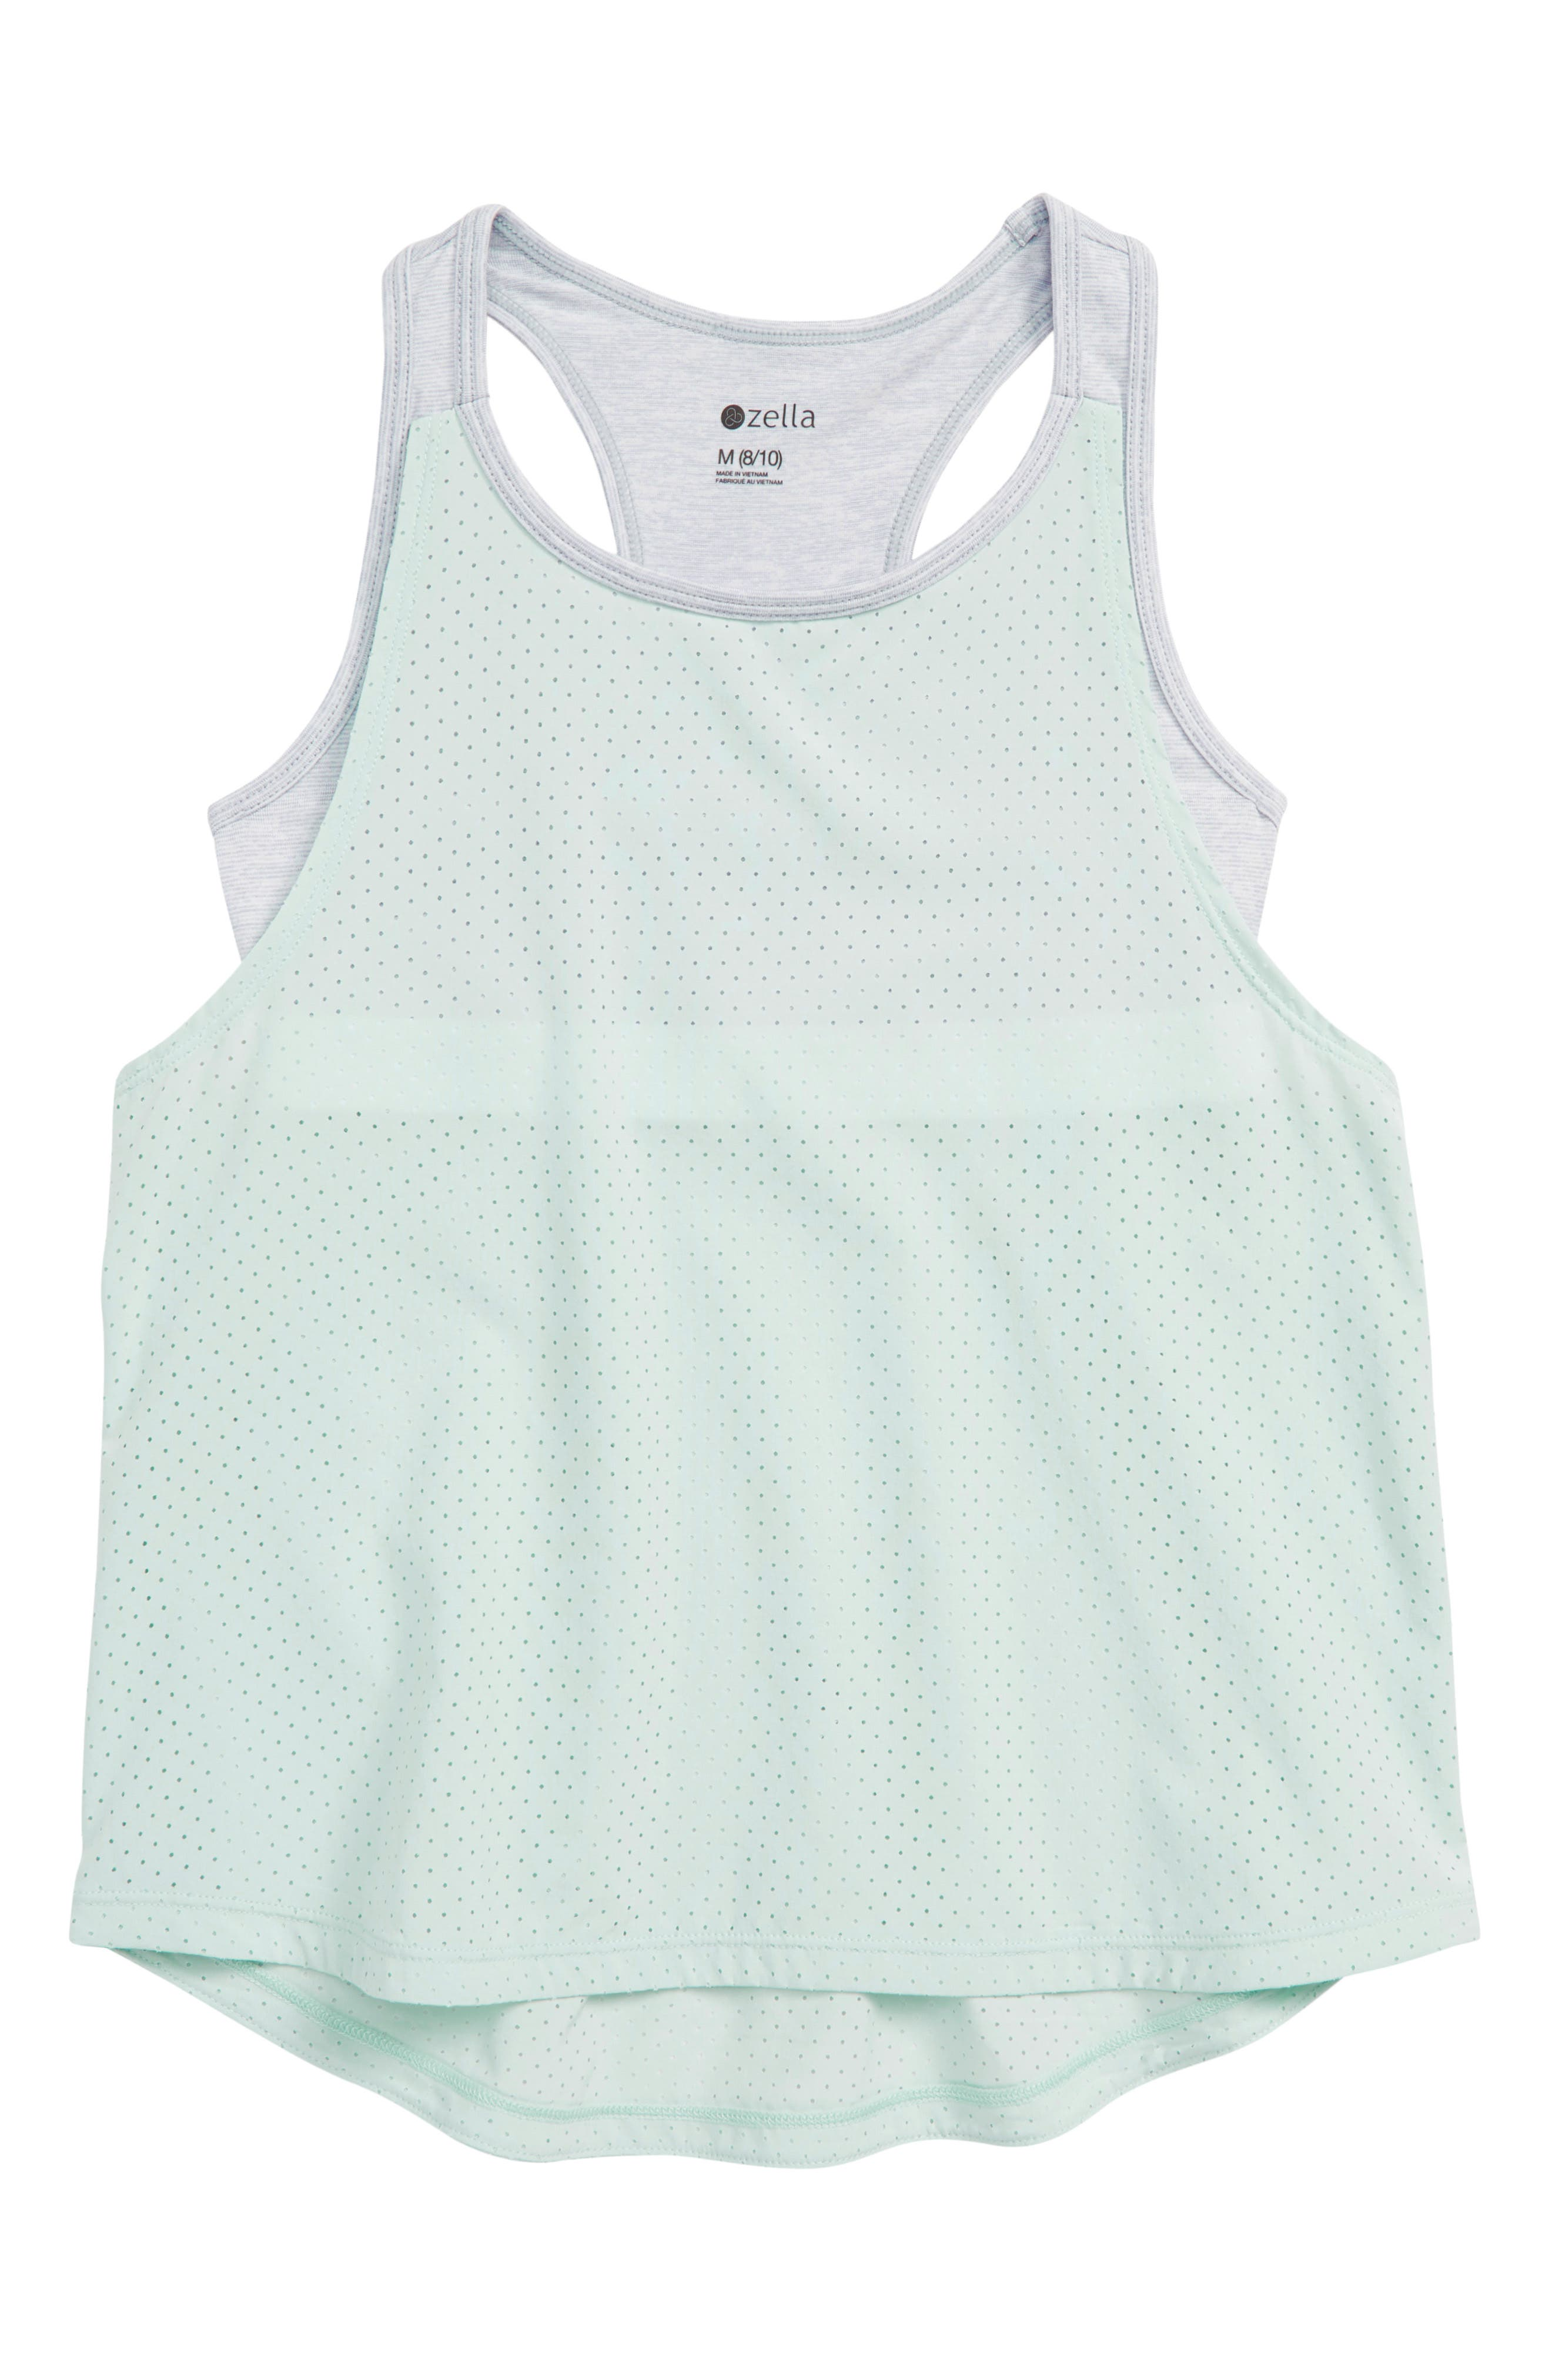 ZELLA GIRL, Sundazed Layer Tank, Main thumbnail 1, color, TEAL SURF